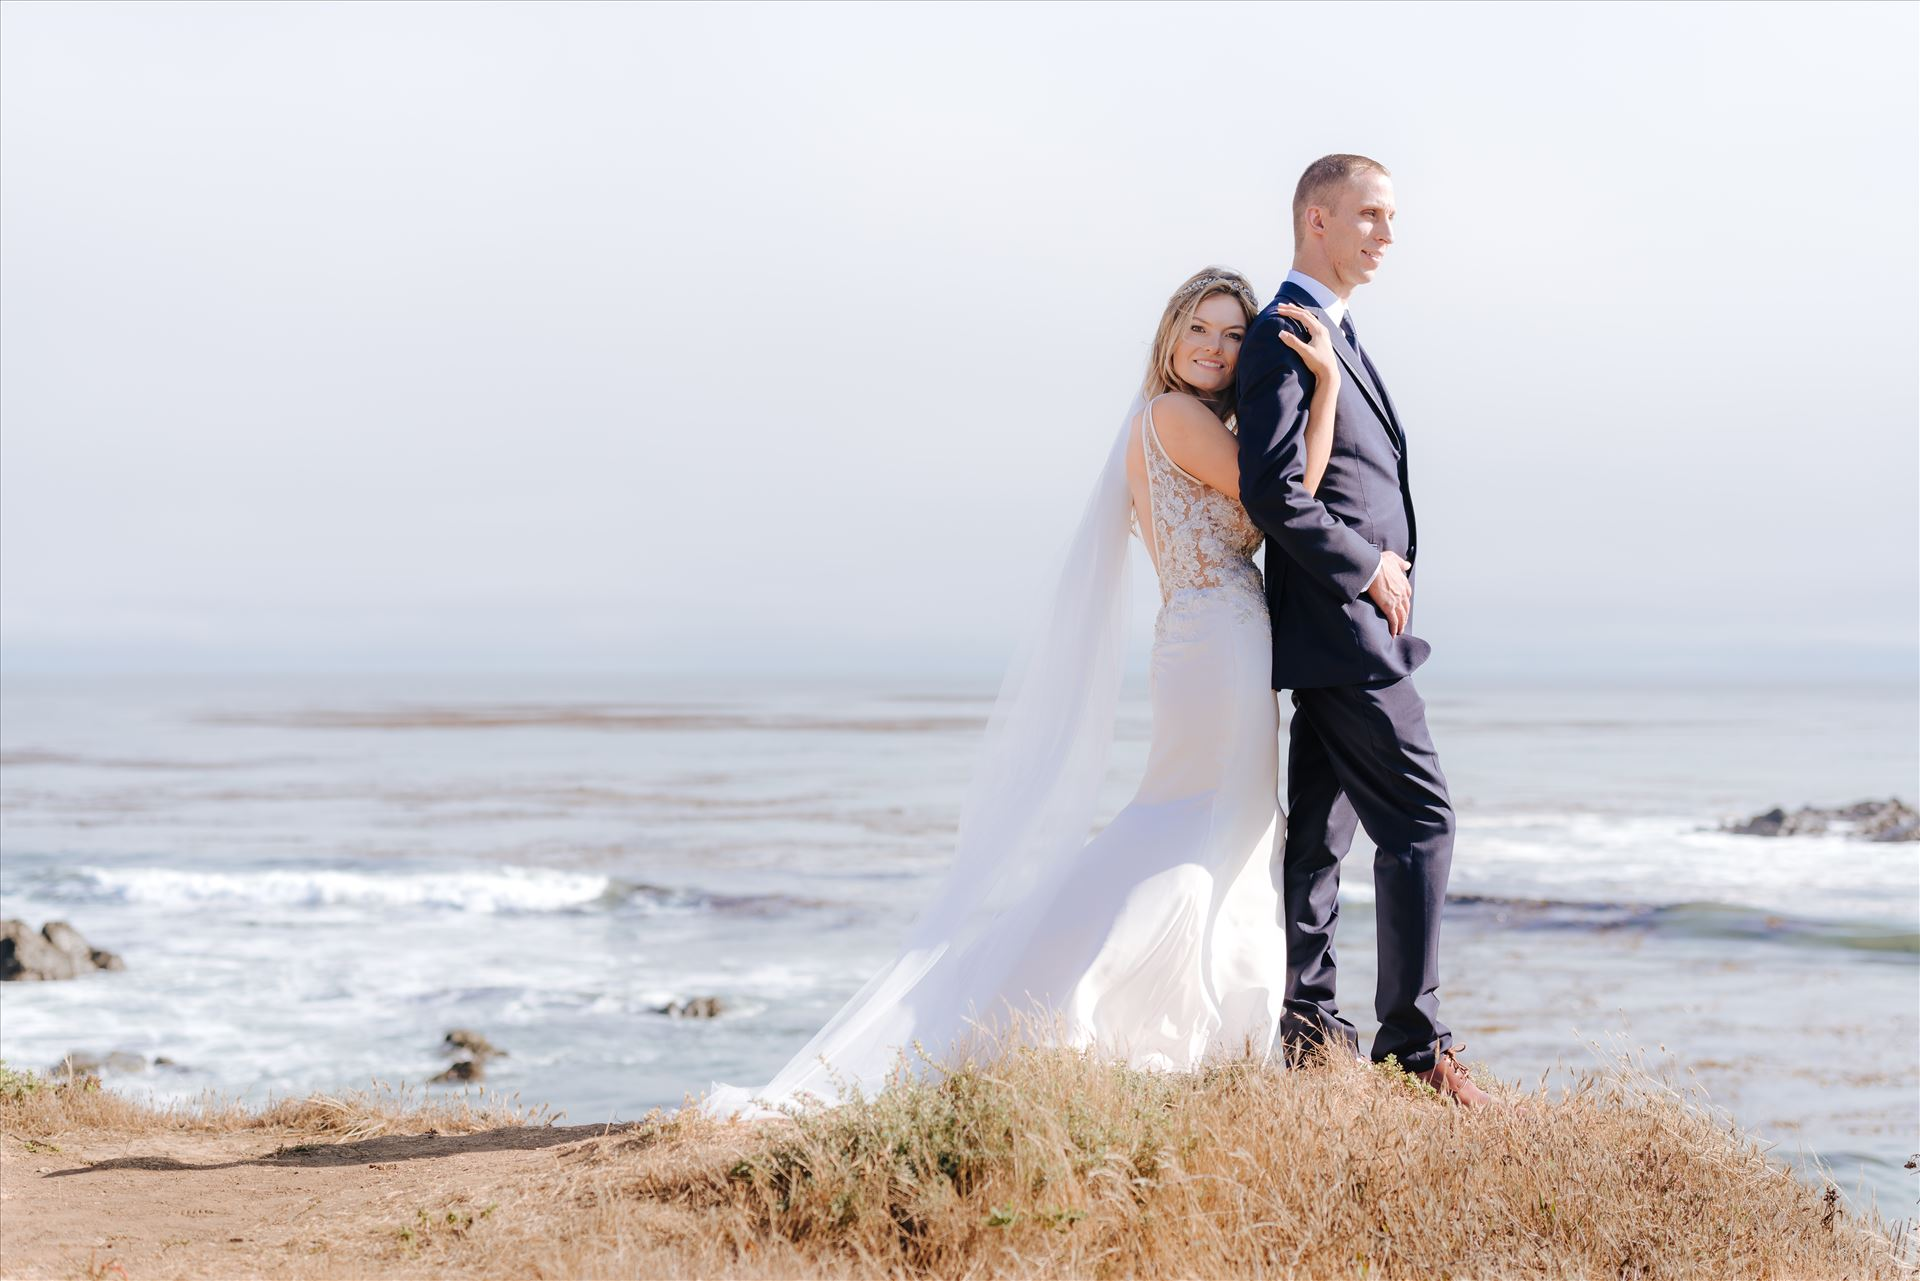 Courtney and Doug 55 - Mirror's Edge Photography, San Luis Obispo Wedding Photographer captures Cayucos Wedding on the beach and bluffs in Cayucos Central California Coast. Bride and Groom overlooking the ocean by Sarah Williams